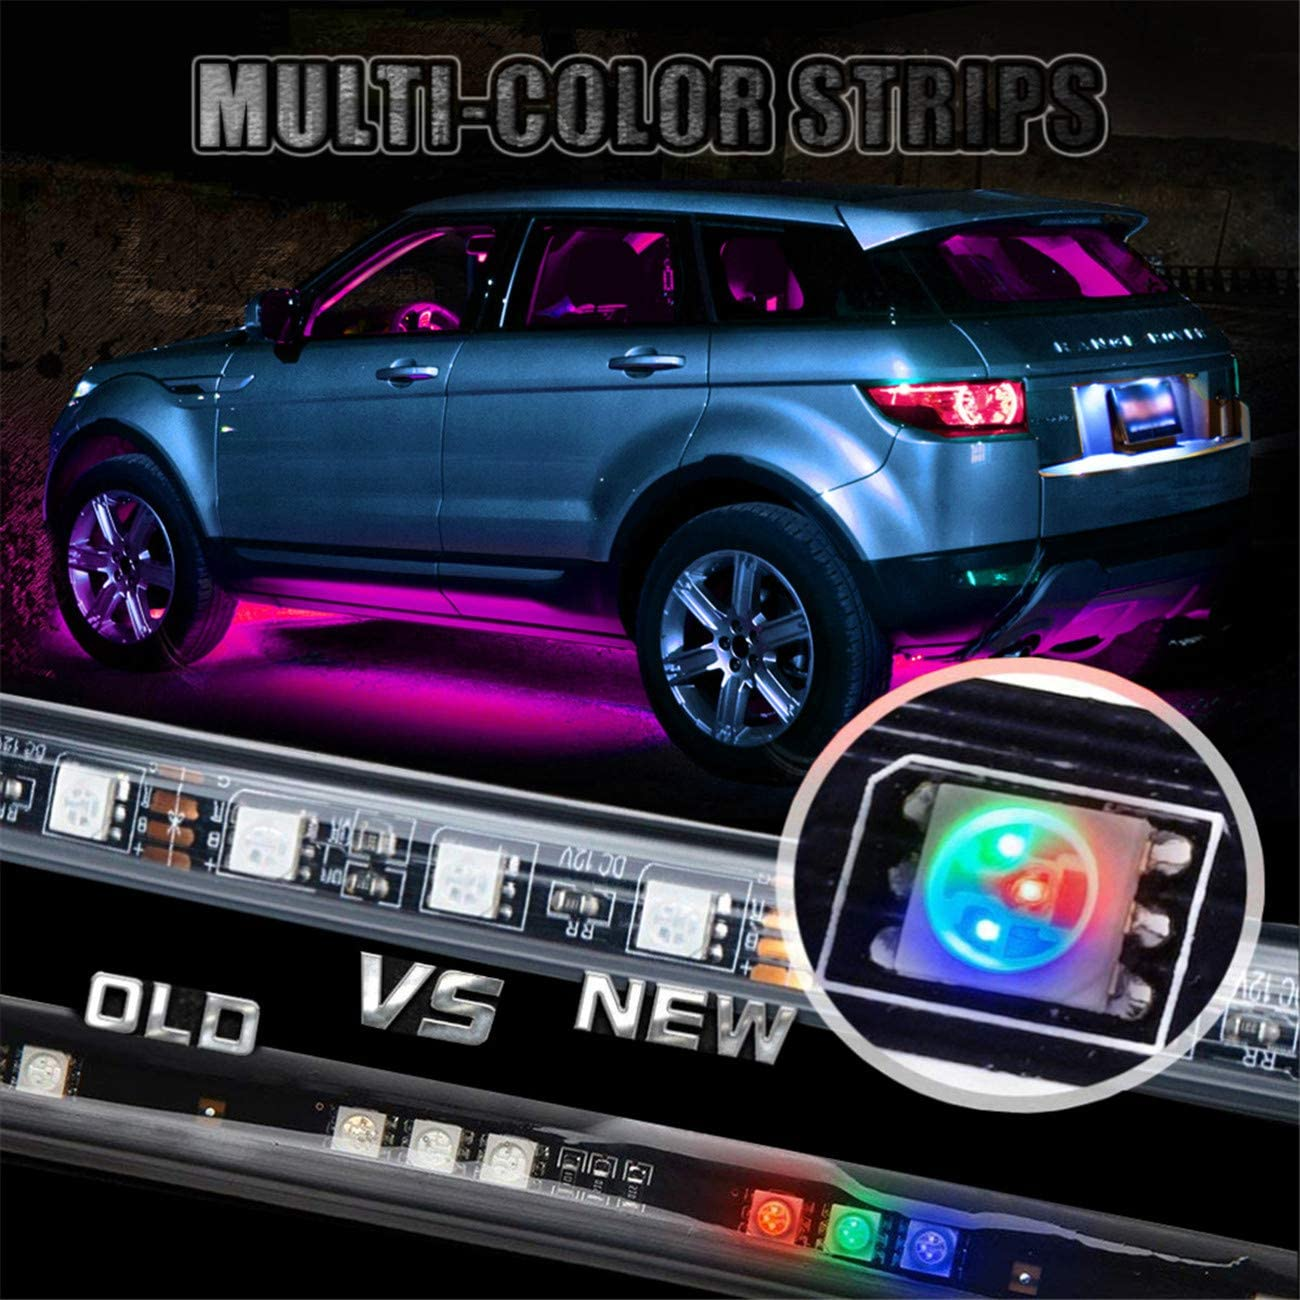 High Intensity LED Rock Lights w//Sound Active Function and Wireless Remote Control EJs SUPER CAR 4PCs Car Neon Underglow Underbody LED Light Kit Undercar Strip Lighting